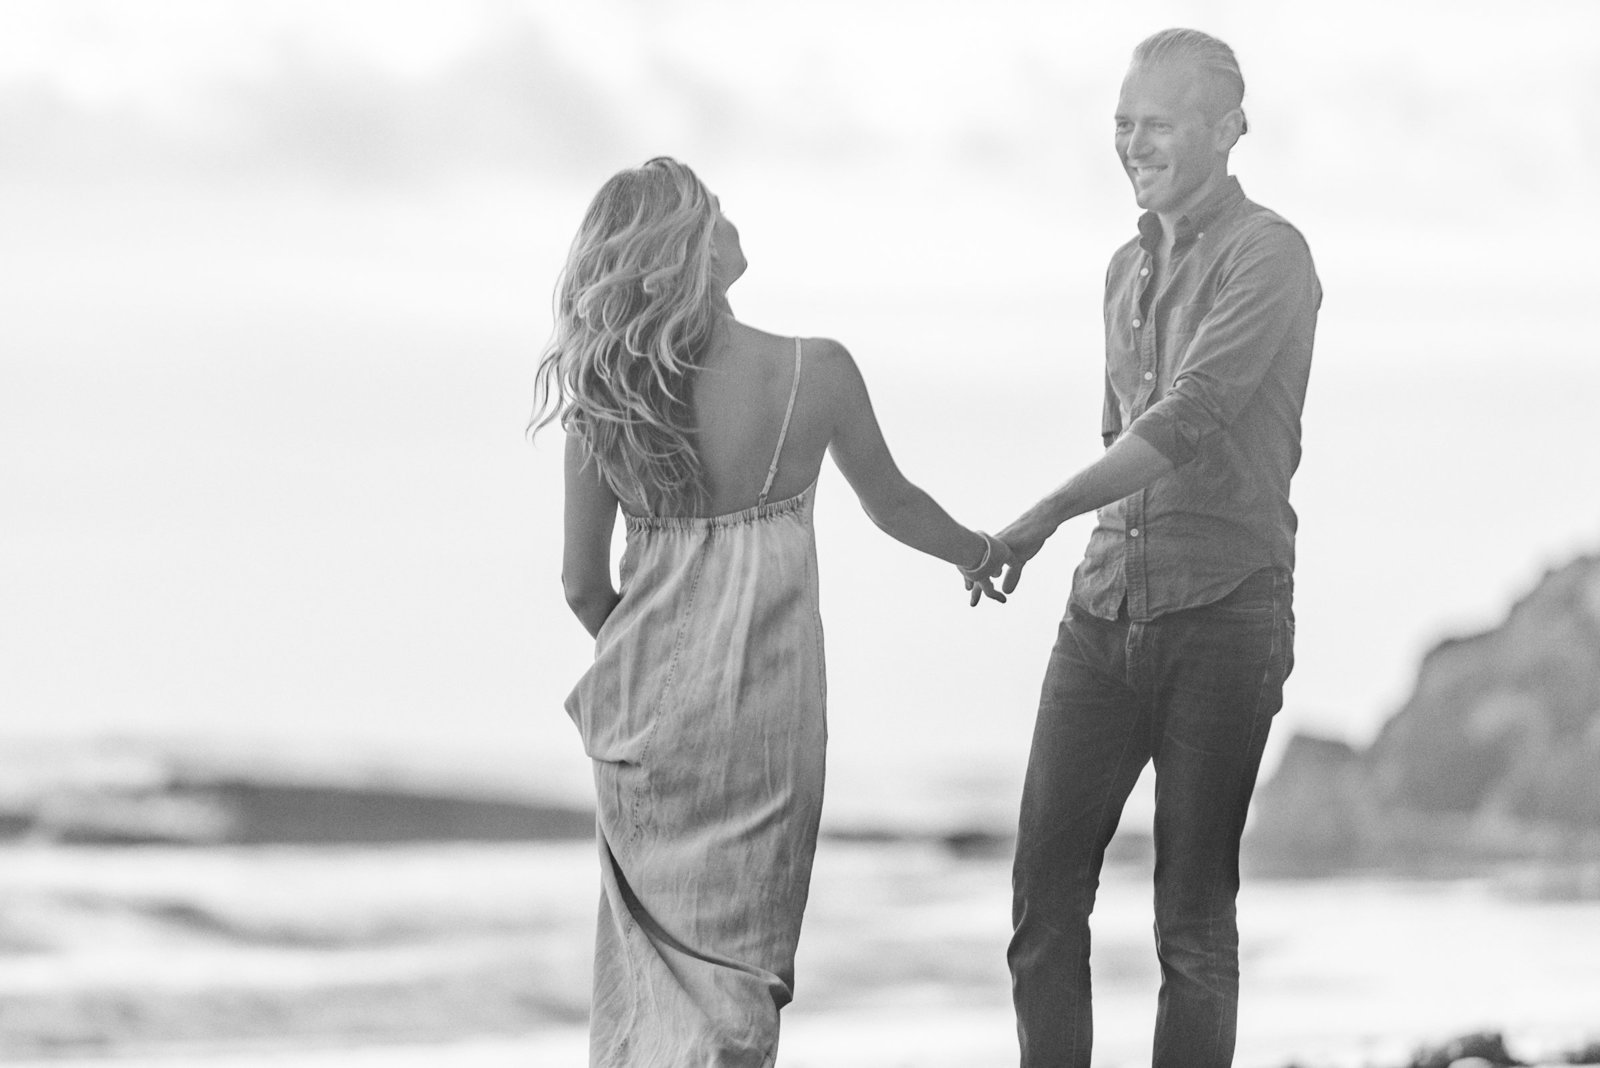 20180221-Pura-Soul-Photo-Encinitas-Engagement-Shoot-33